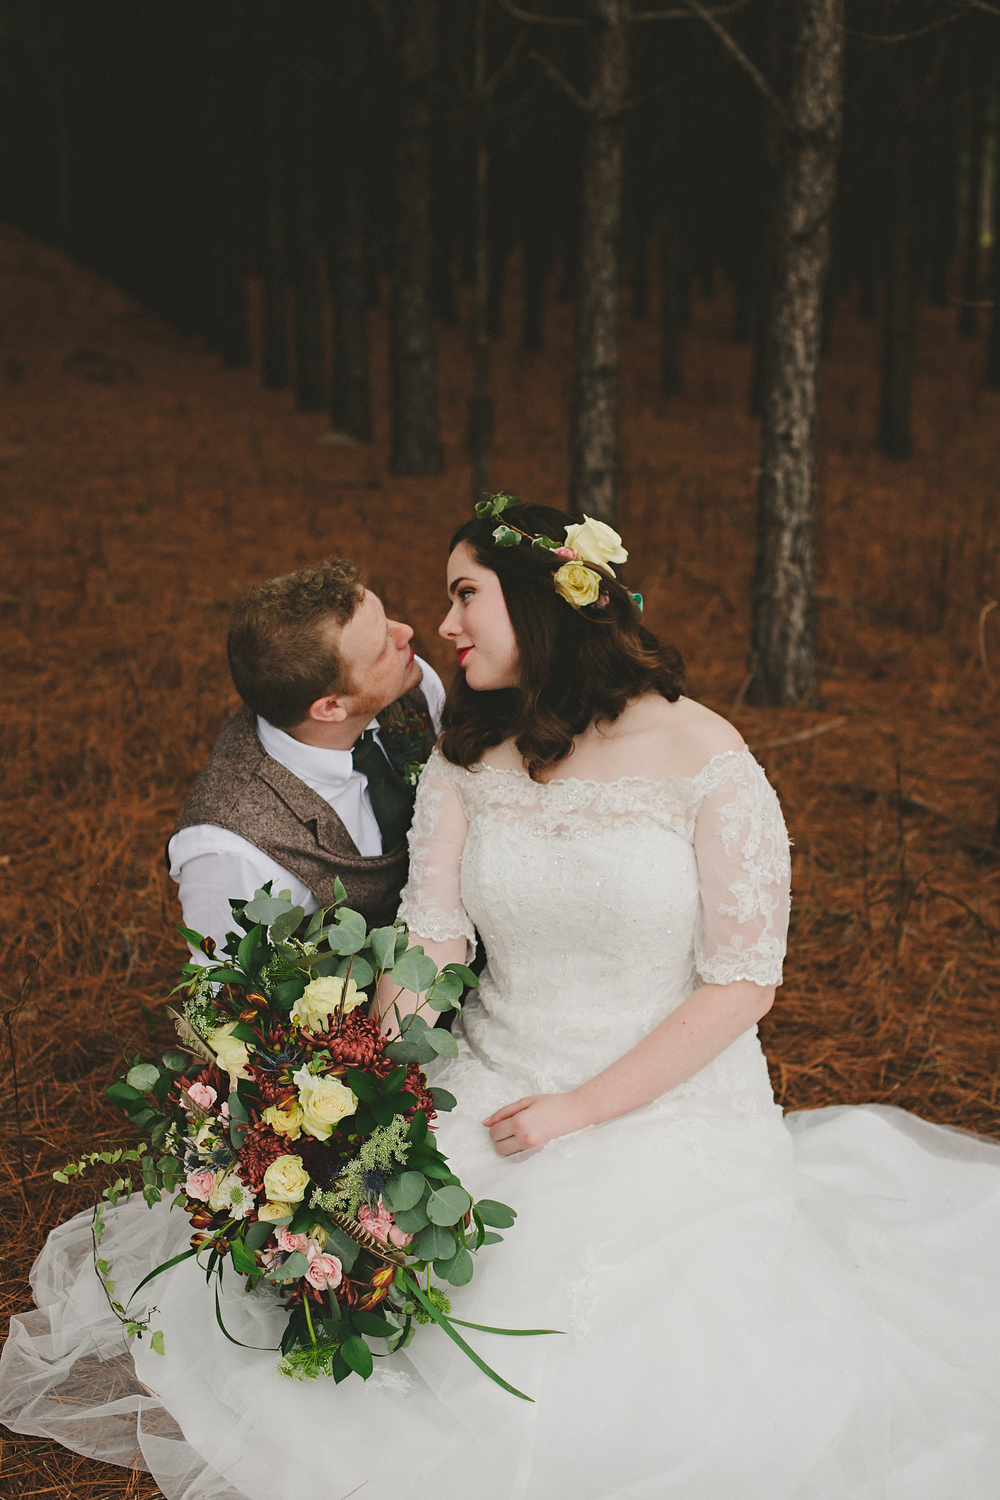 Ng-Photography-backyard-wedding-royal-hair-and-makeup-ivory-and-beau-wedding-planning-wedding-flowers-savannah-florist-savannah-flowers-savannah-weddings-savannah-wedding-savannah-event-planner-savannah-wedding-planner-savannah-rustic-wedding-22.jpg